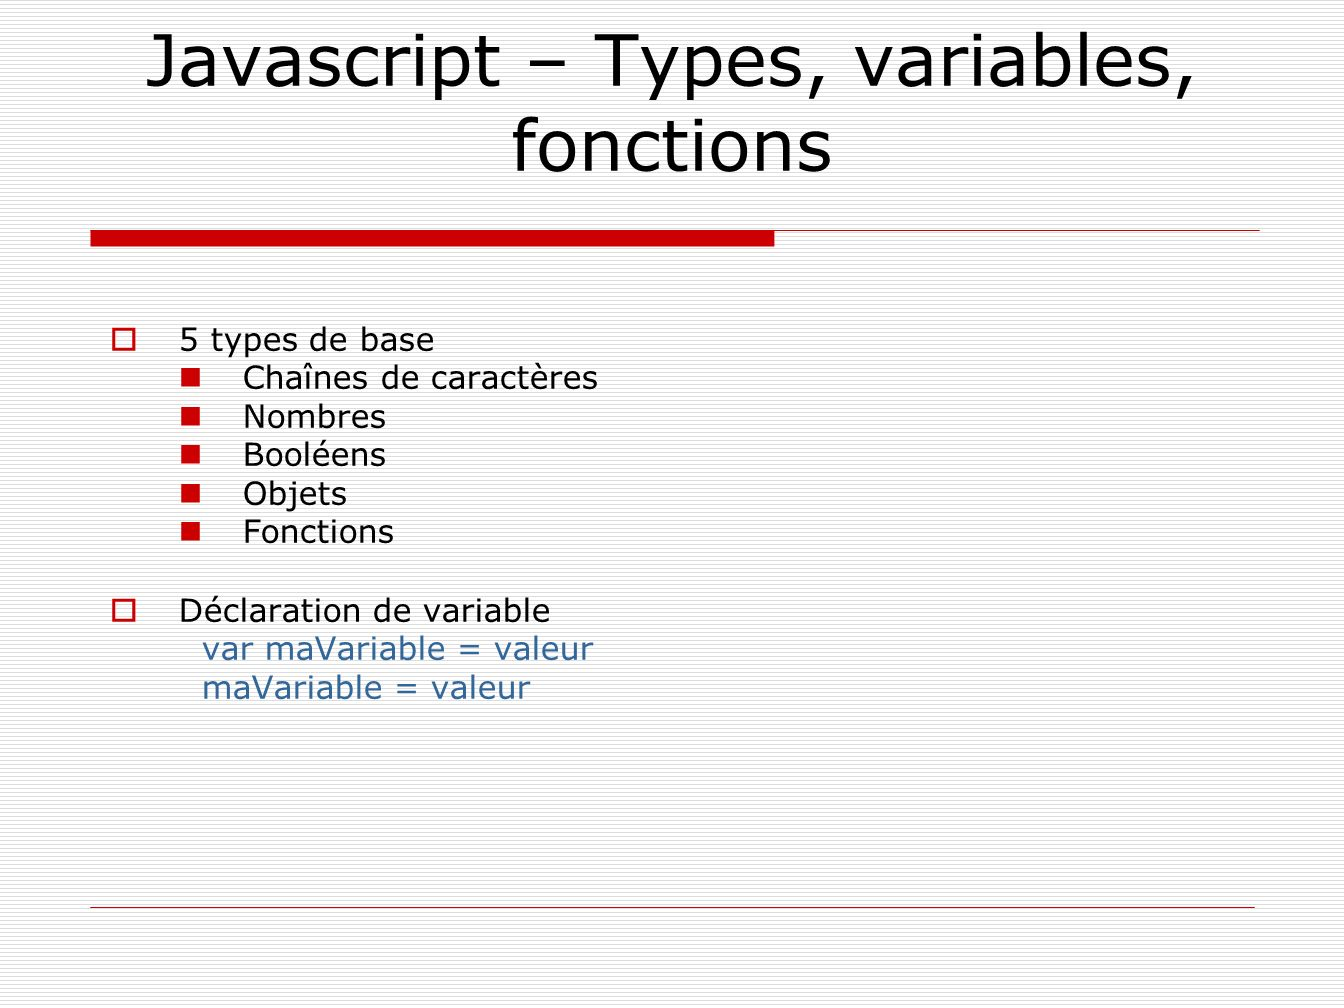 Javascript – Types, variables, fonctions